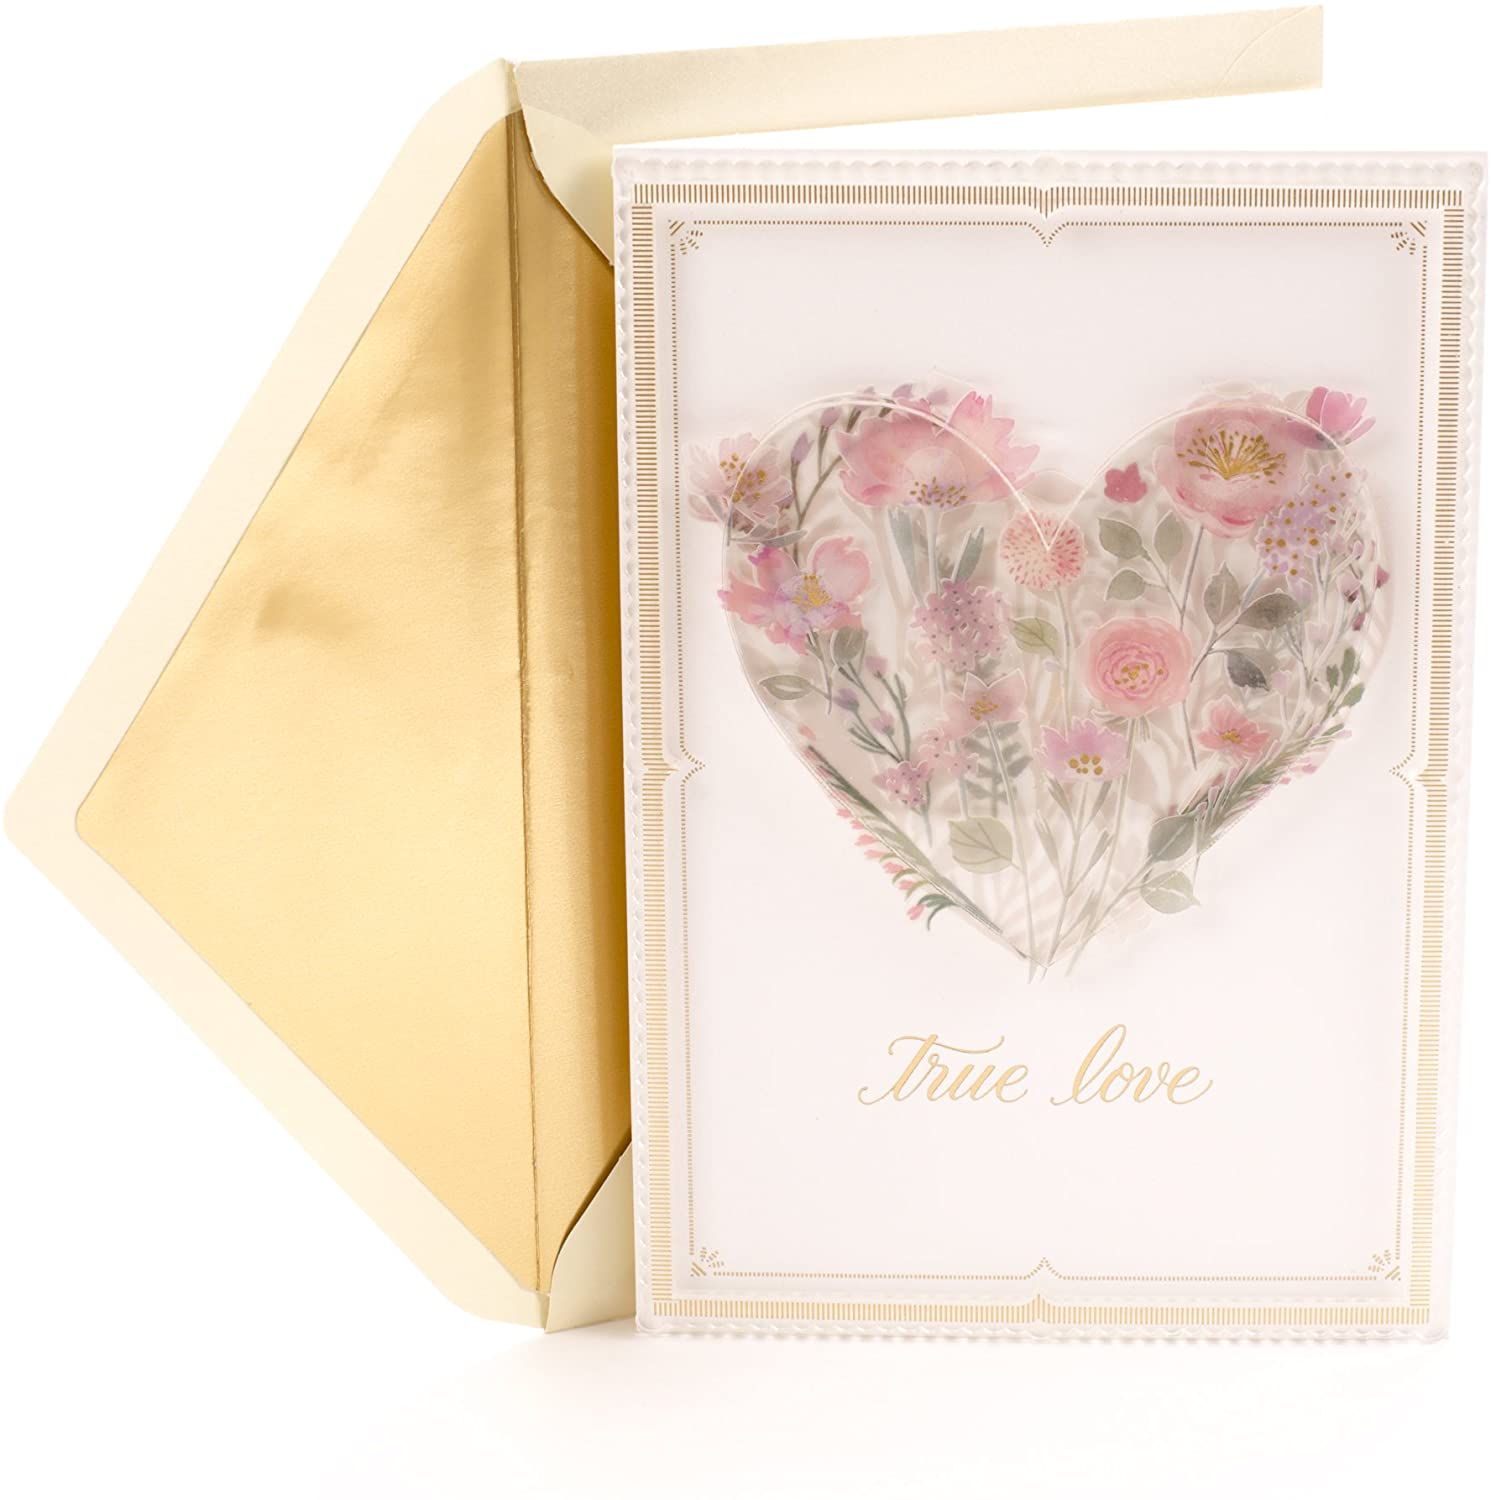 Hallmark Signature Love Card, Romantic Anniversary Card or Birthday Card (Today, Tomorrow, Always)